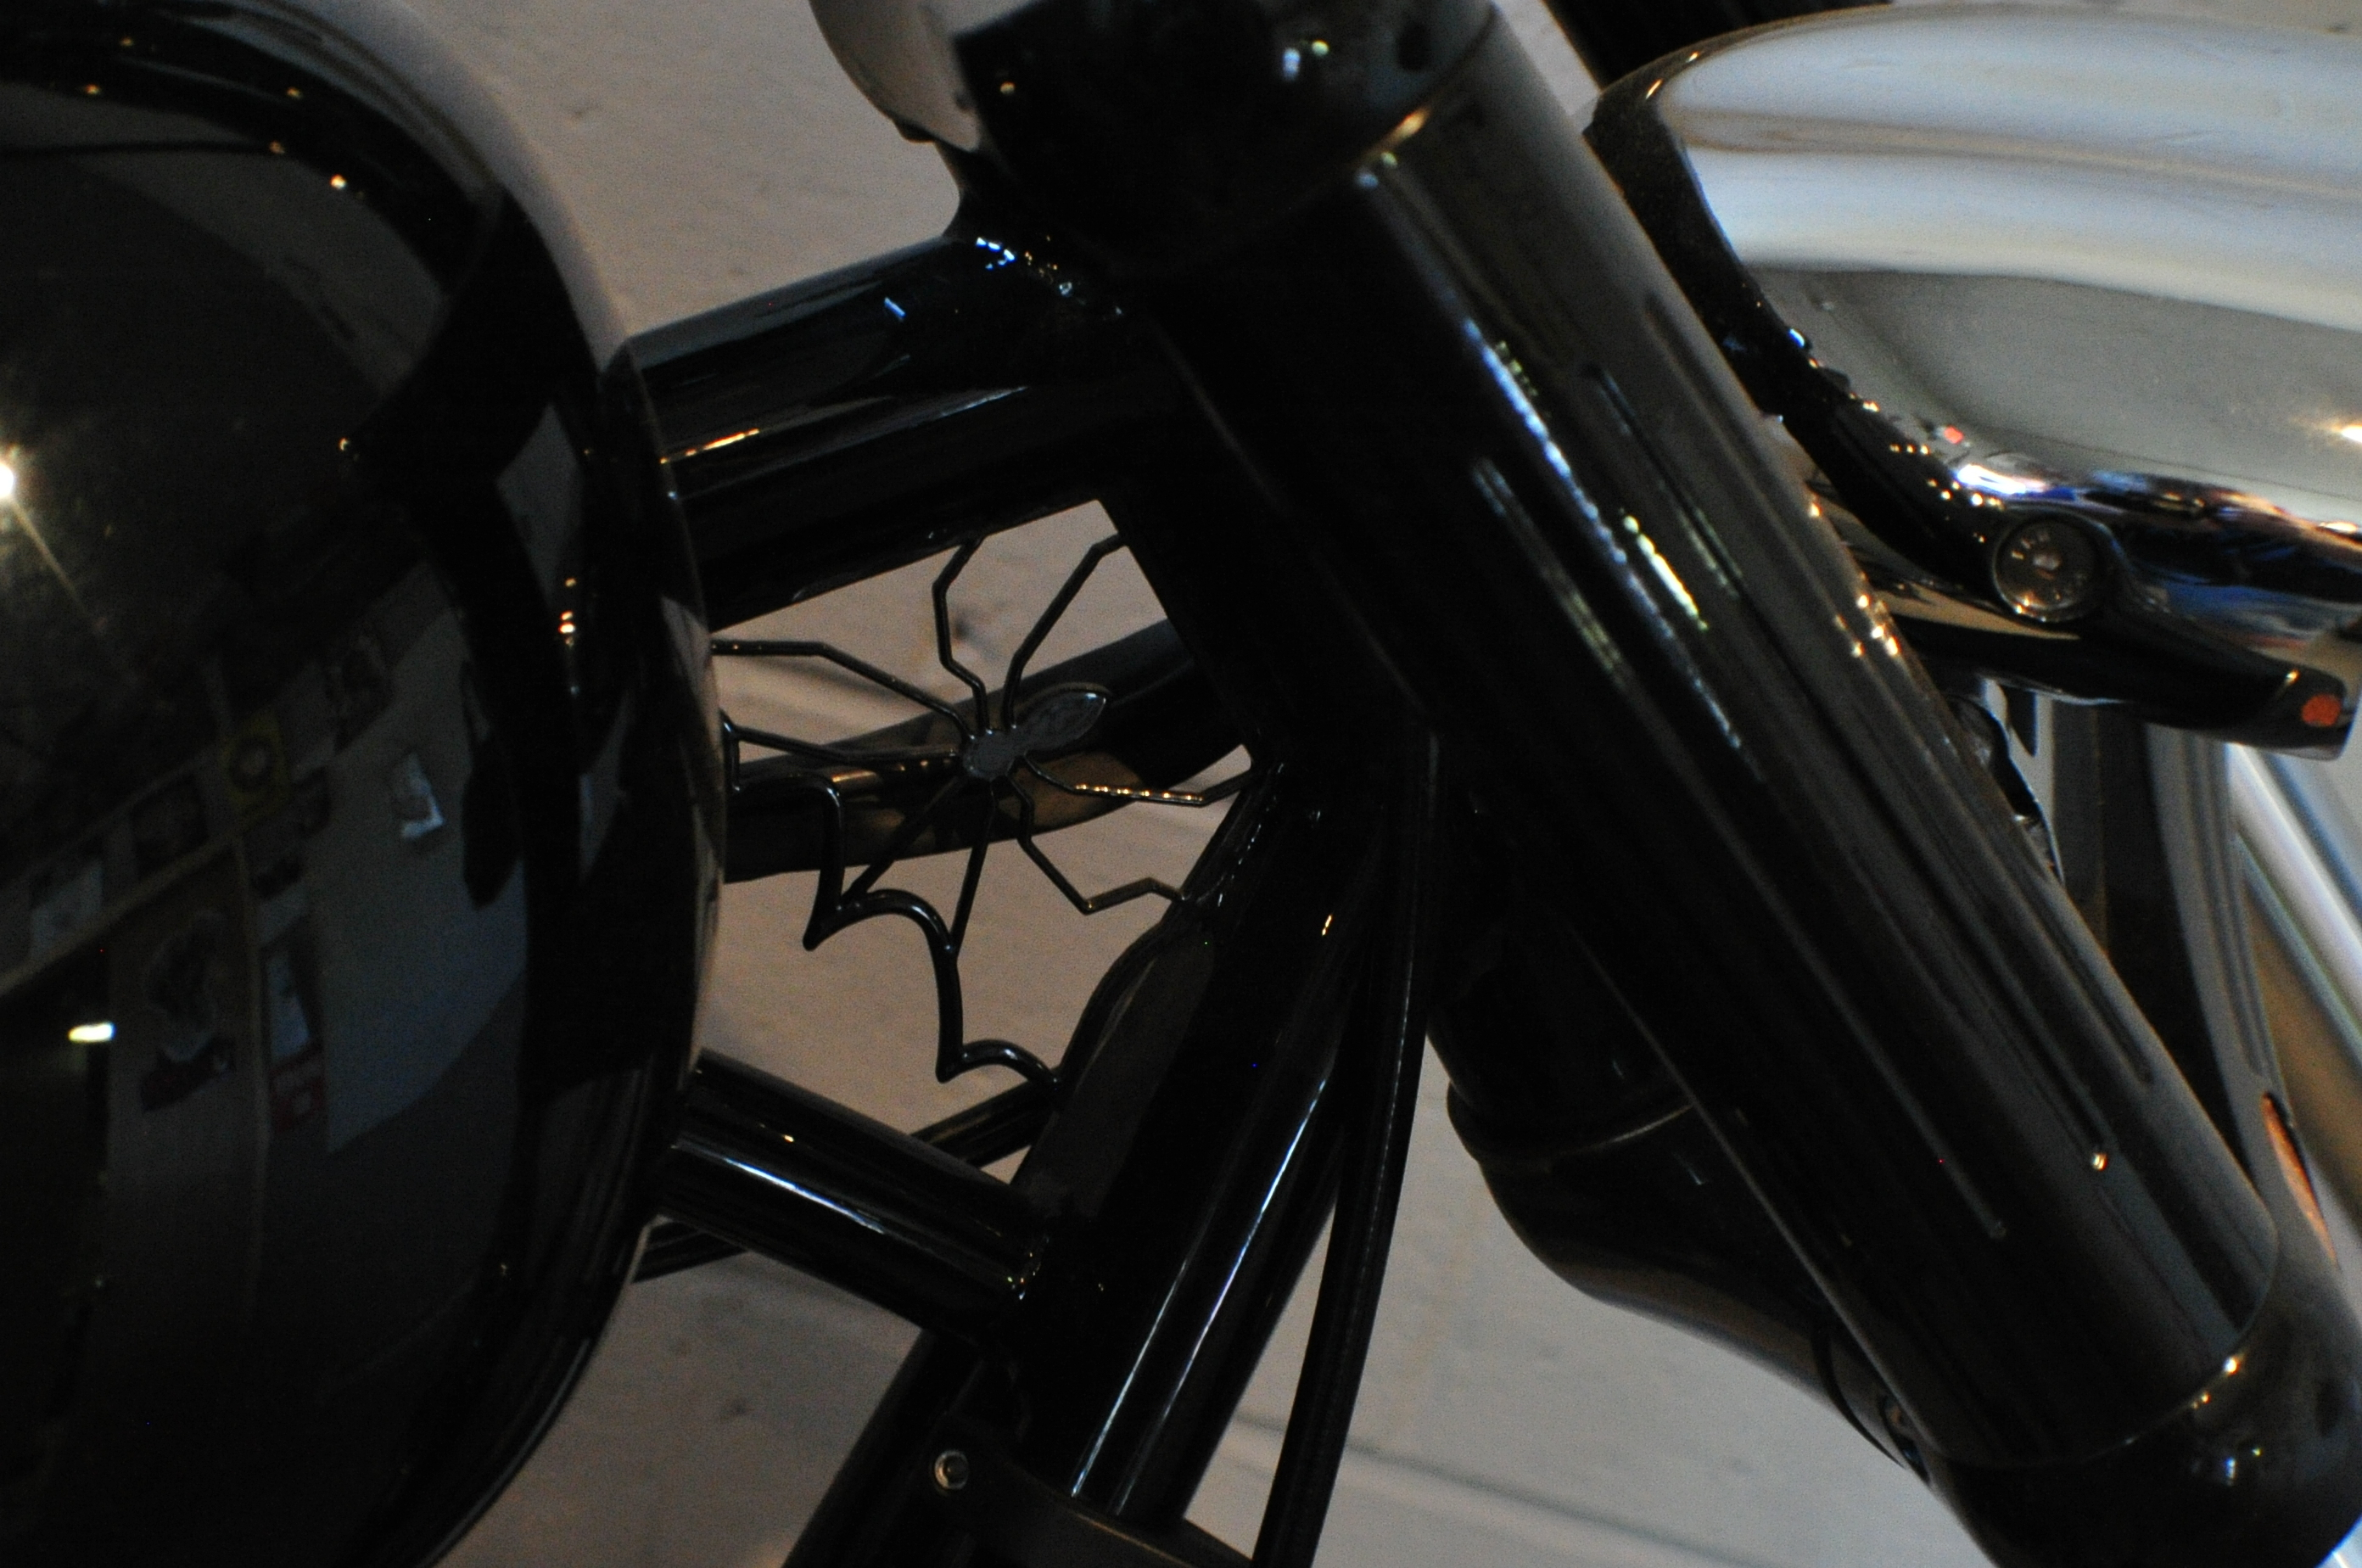 2015 New Age Choppers Glossy Black Custom Motorcycle Sale Gages Lake